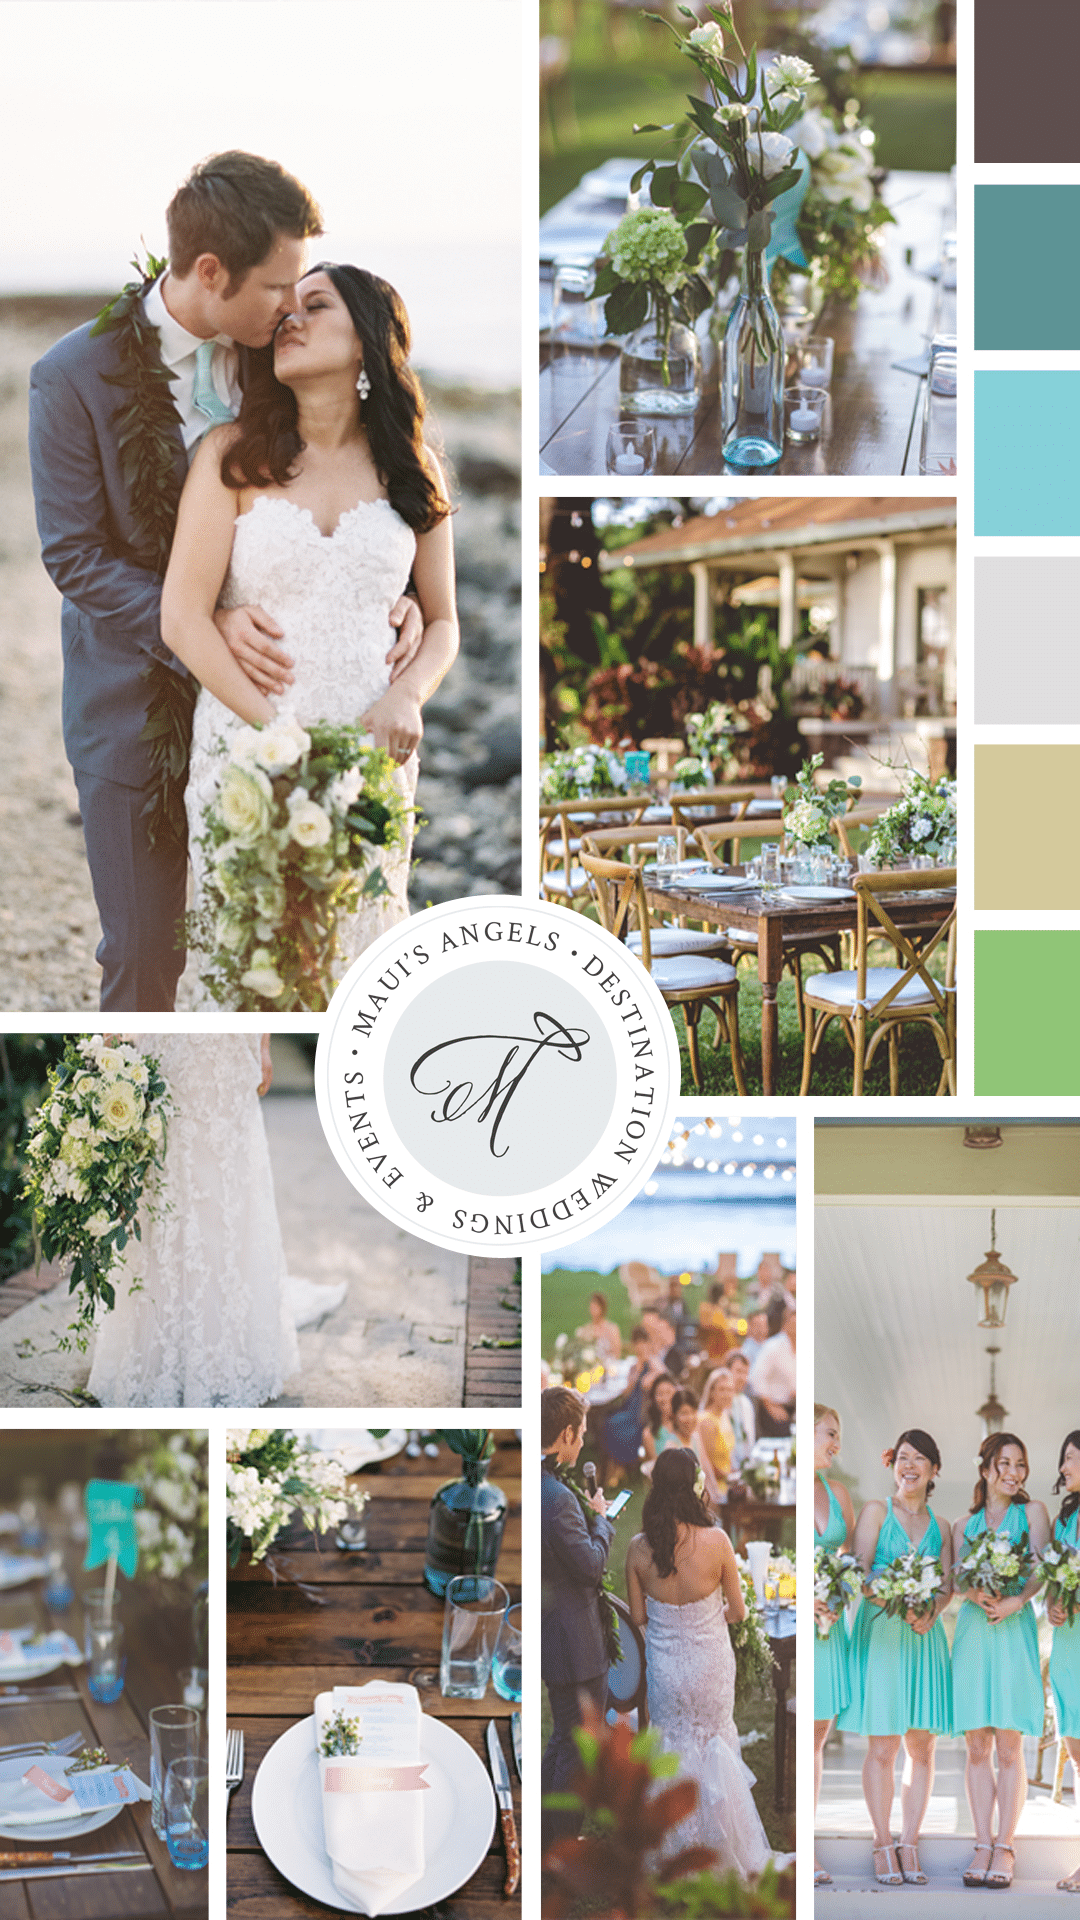 Destination Wedding Color Palette | Wedding in Hawaii | Maui's Angels